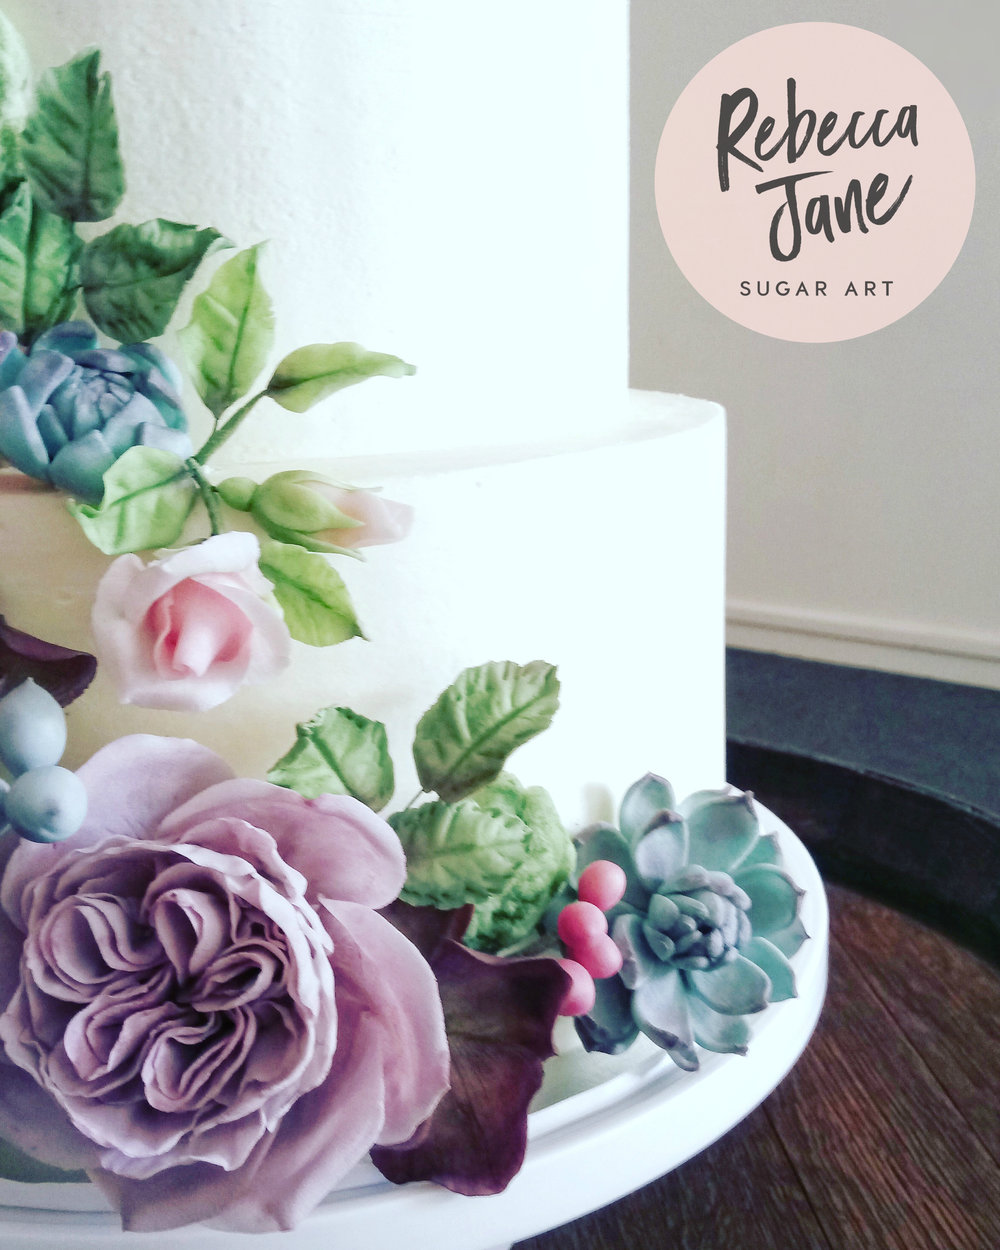 Rebecca Jane Sugar Art - Sugar flower garden cascade buttercream wedding cake